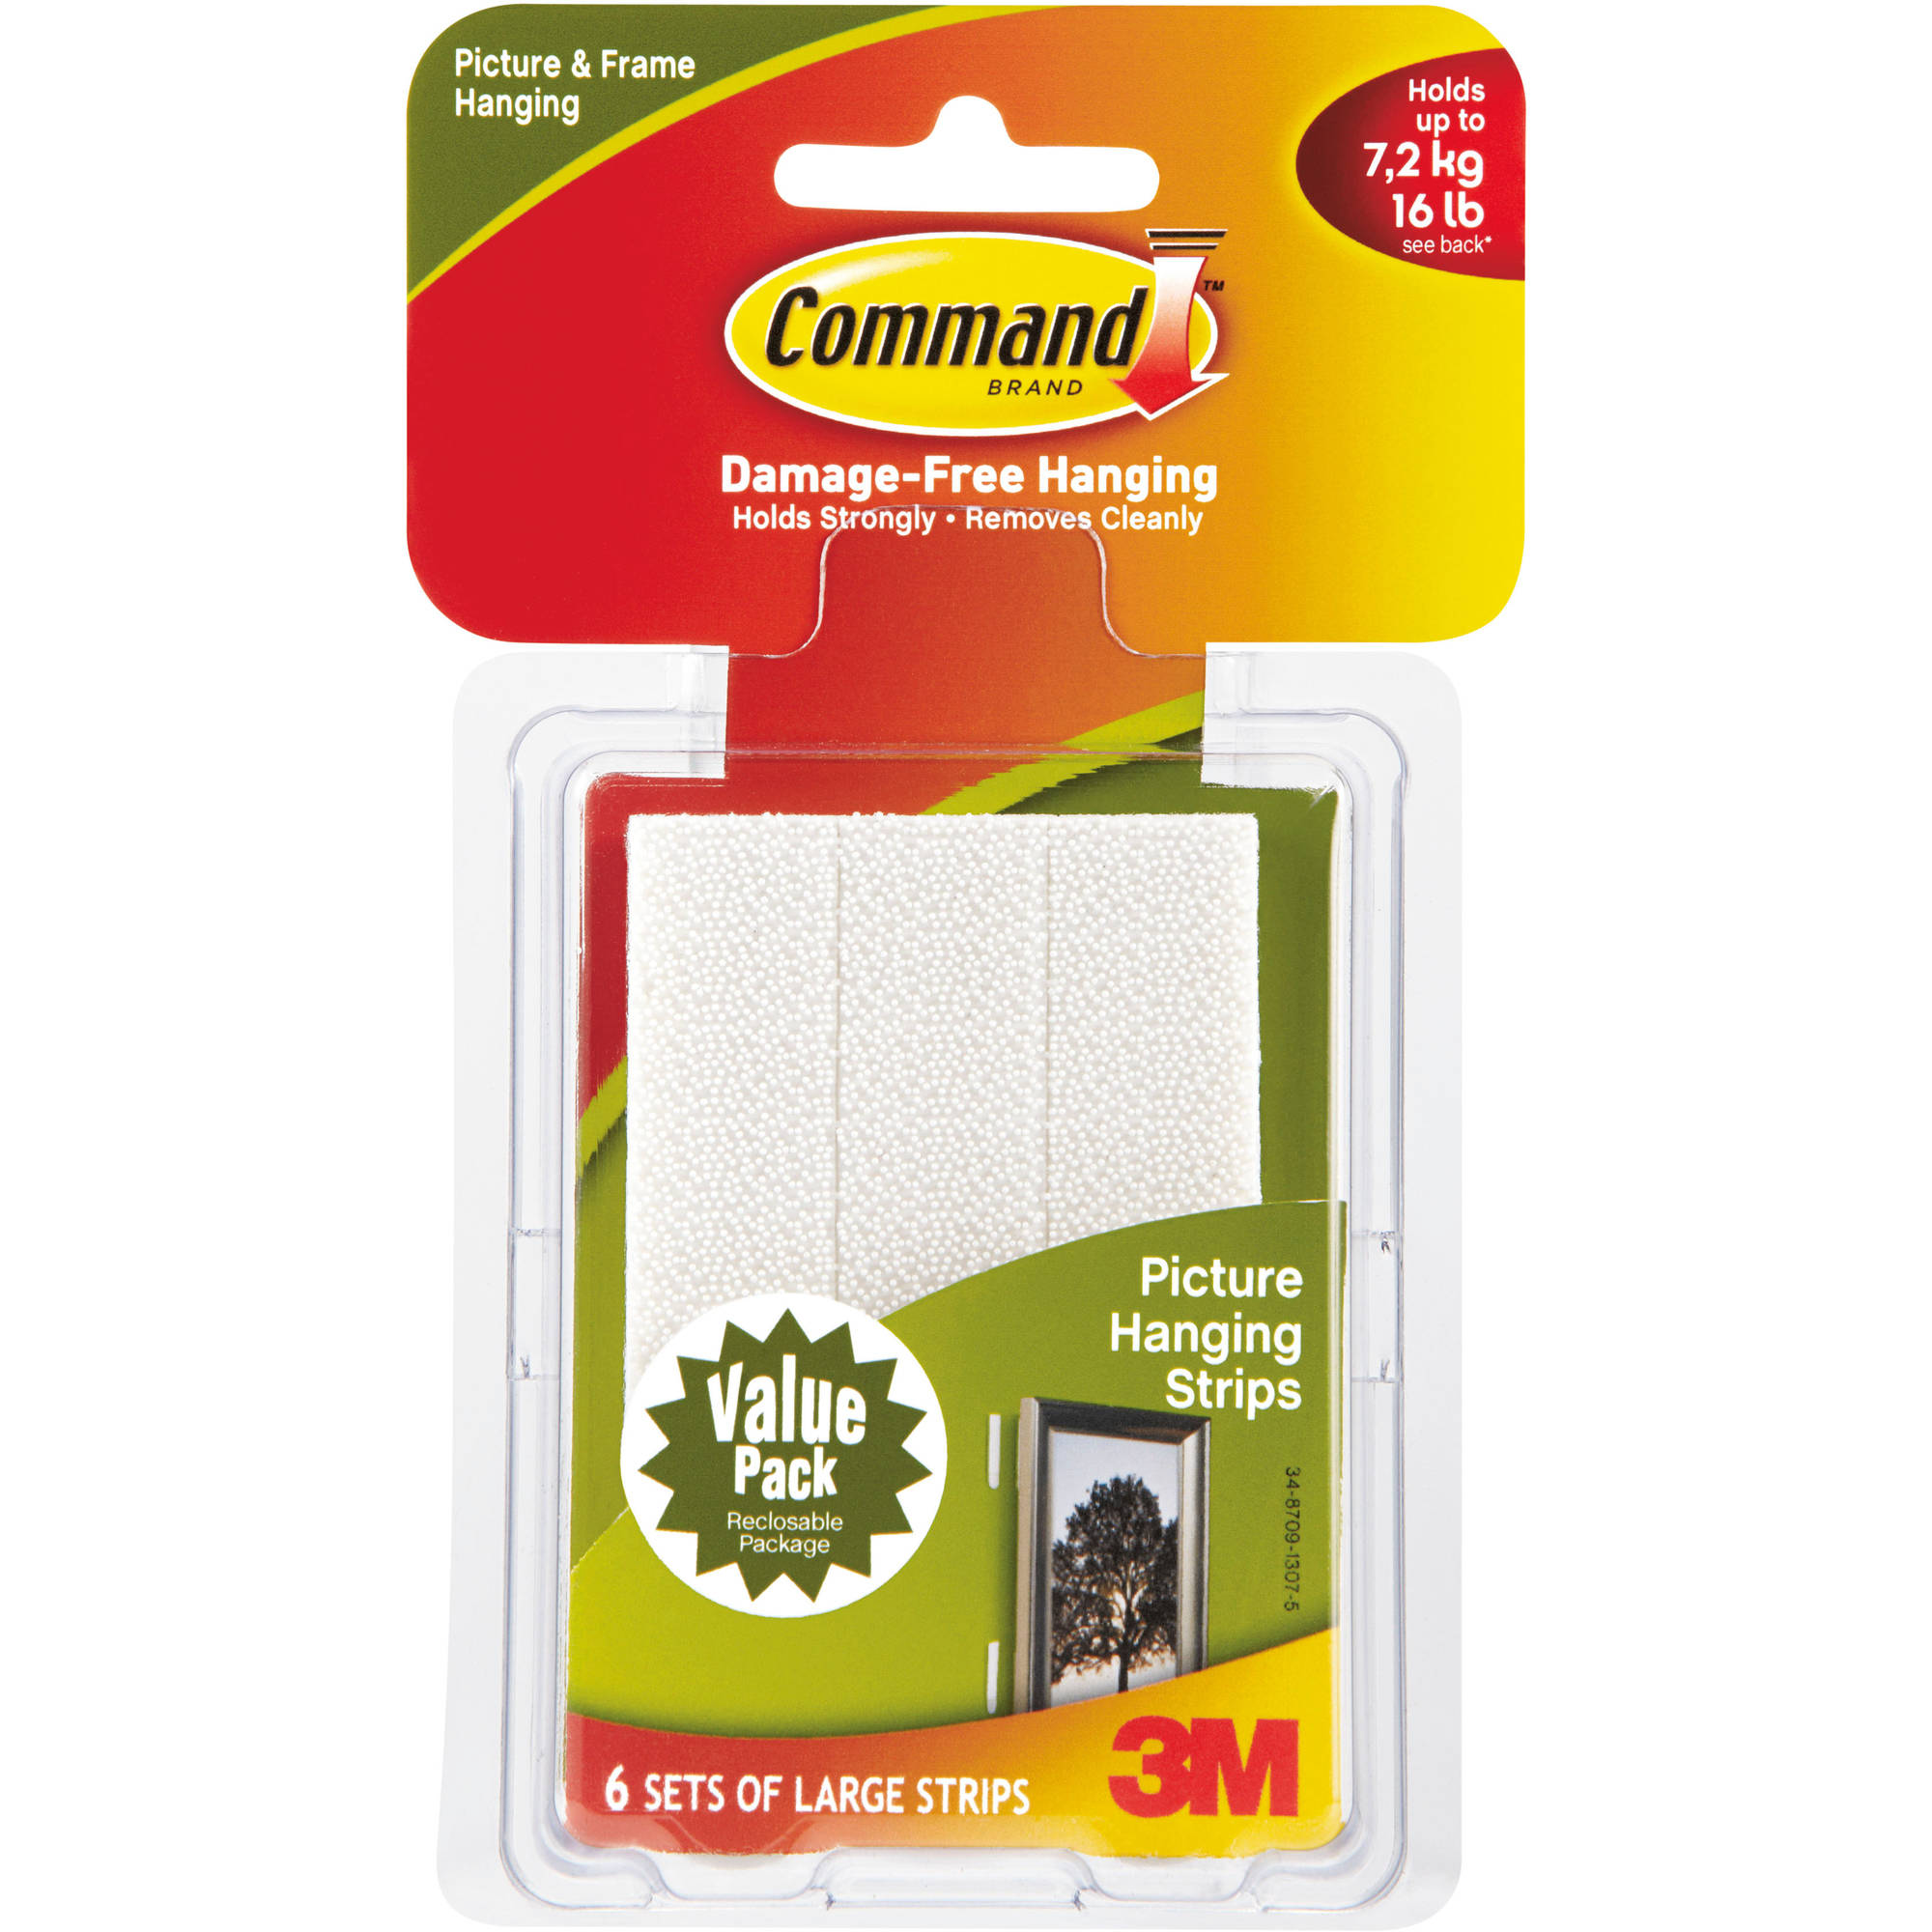 Command Large Picture Hanging Strips, White, 6 Sets of Strips, 17206-VP